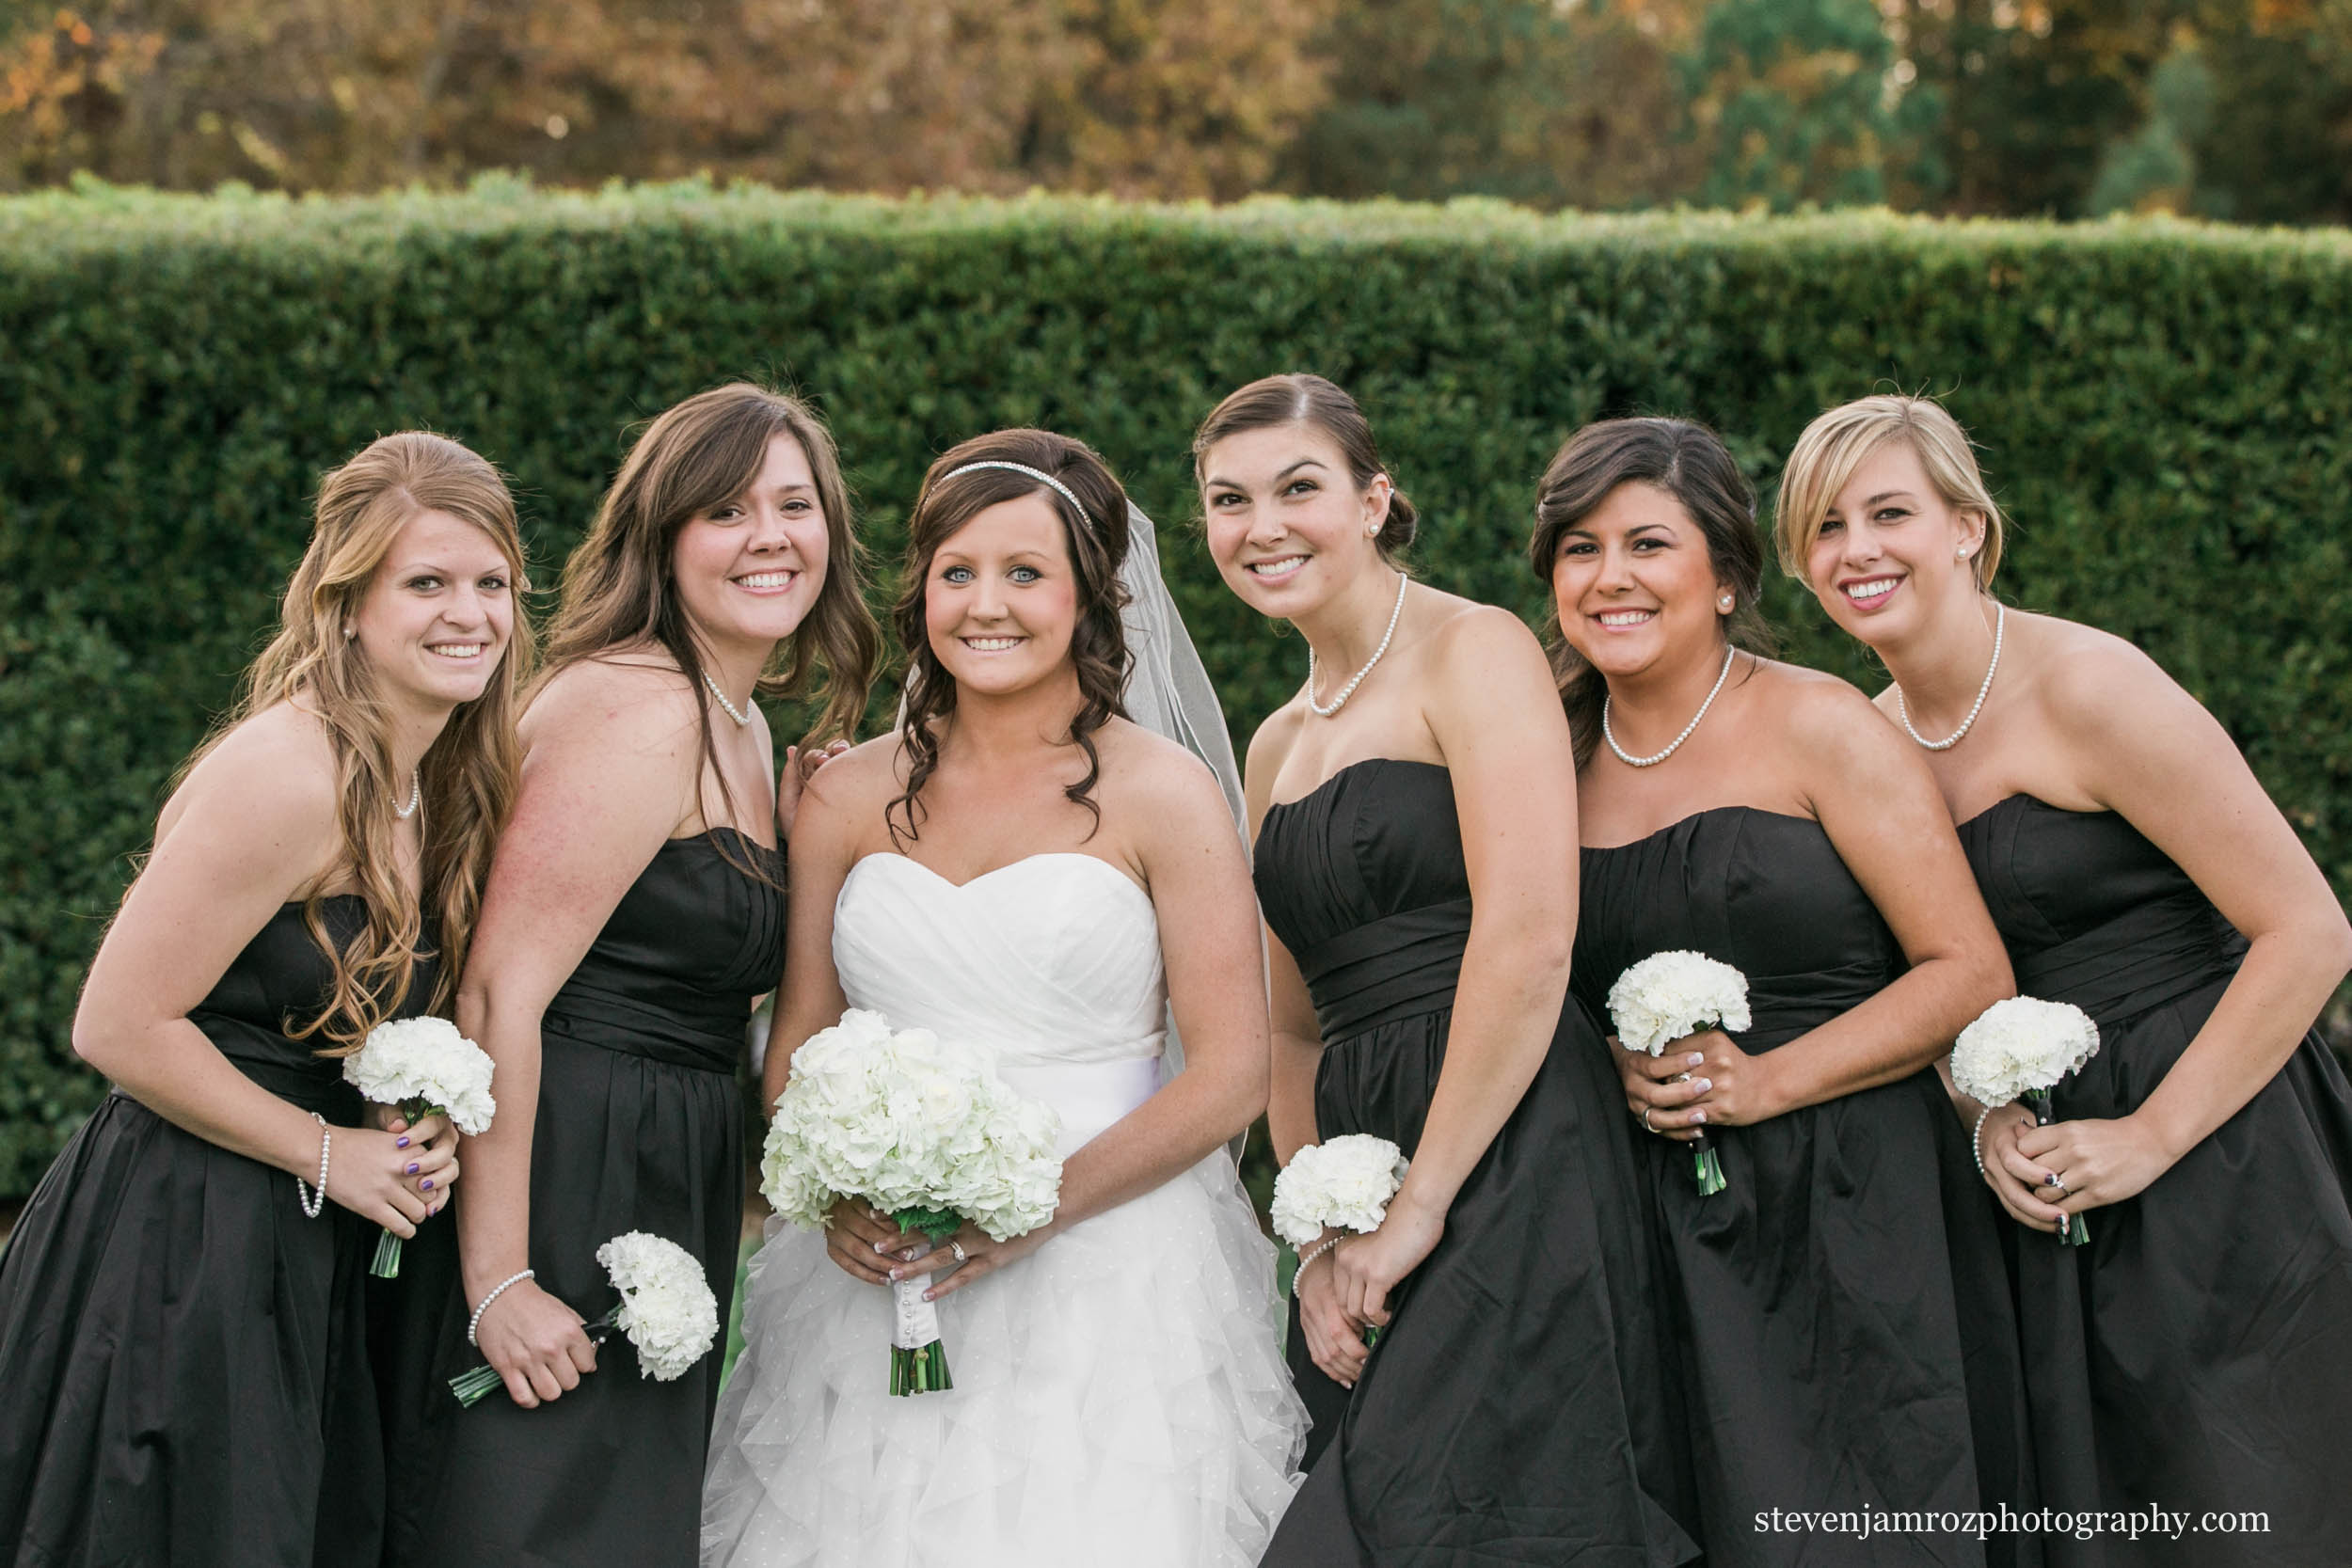 bridesmaids-brown-dresses-fall-wedding-steven-jamroz-photography-0168.jpg